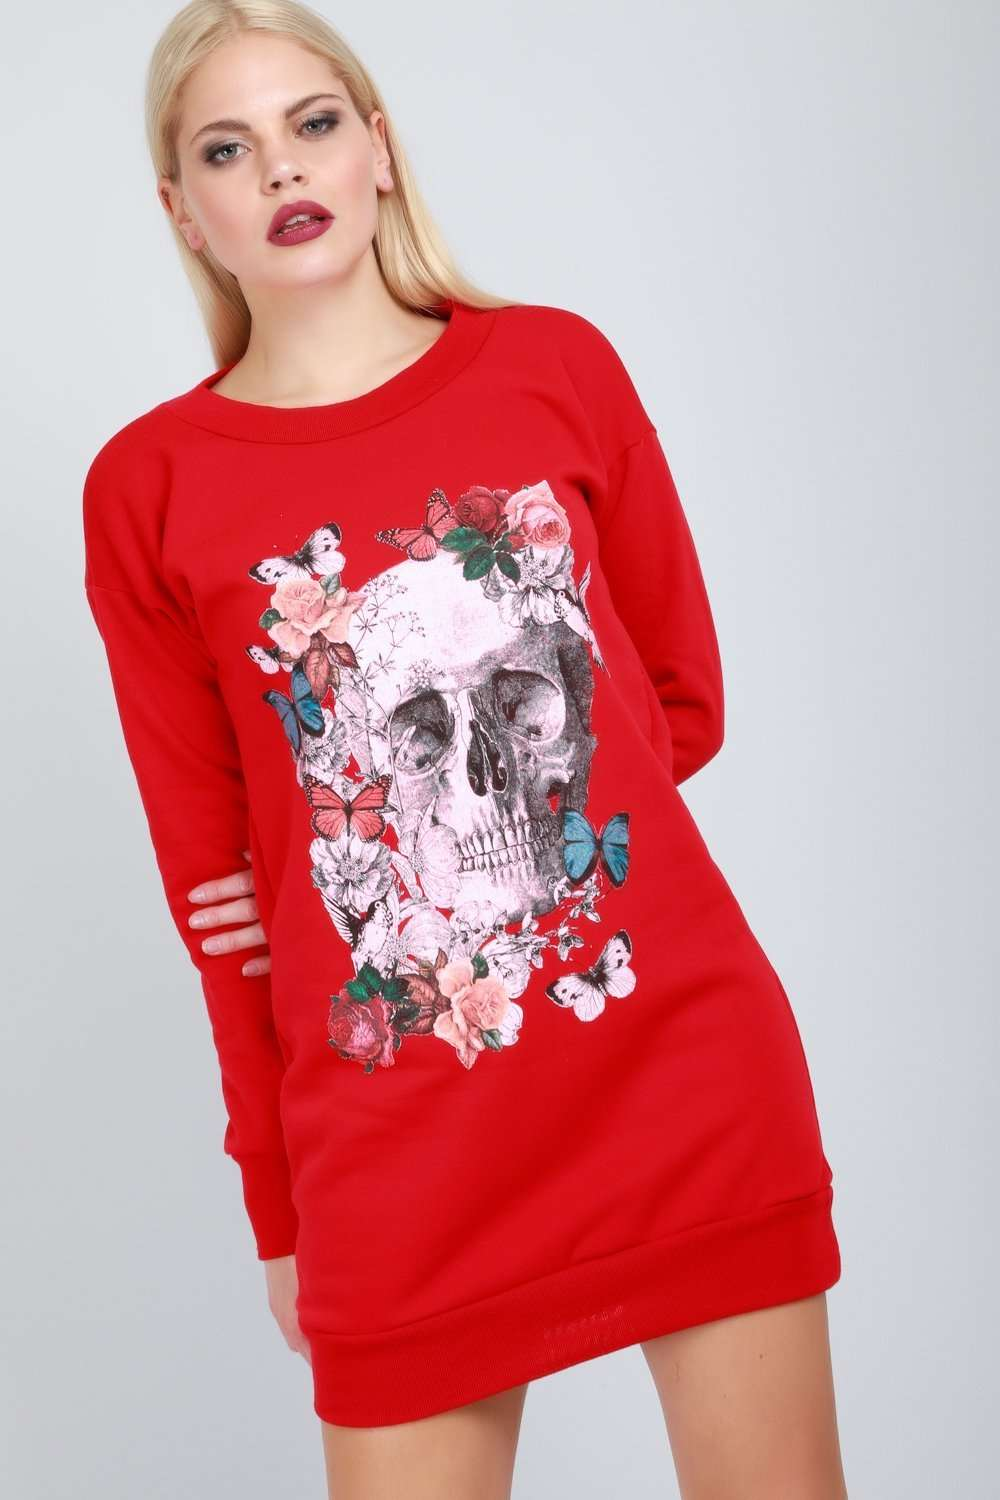 Long Sleeve Red Floral Skull Print Jumper Dress - bejealous-com